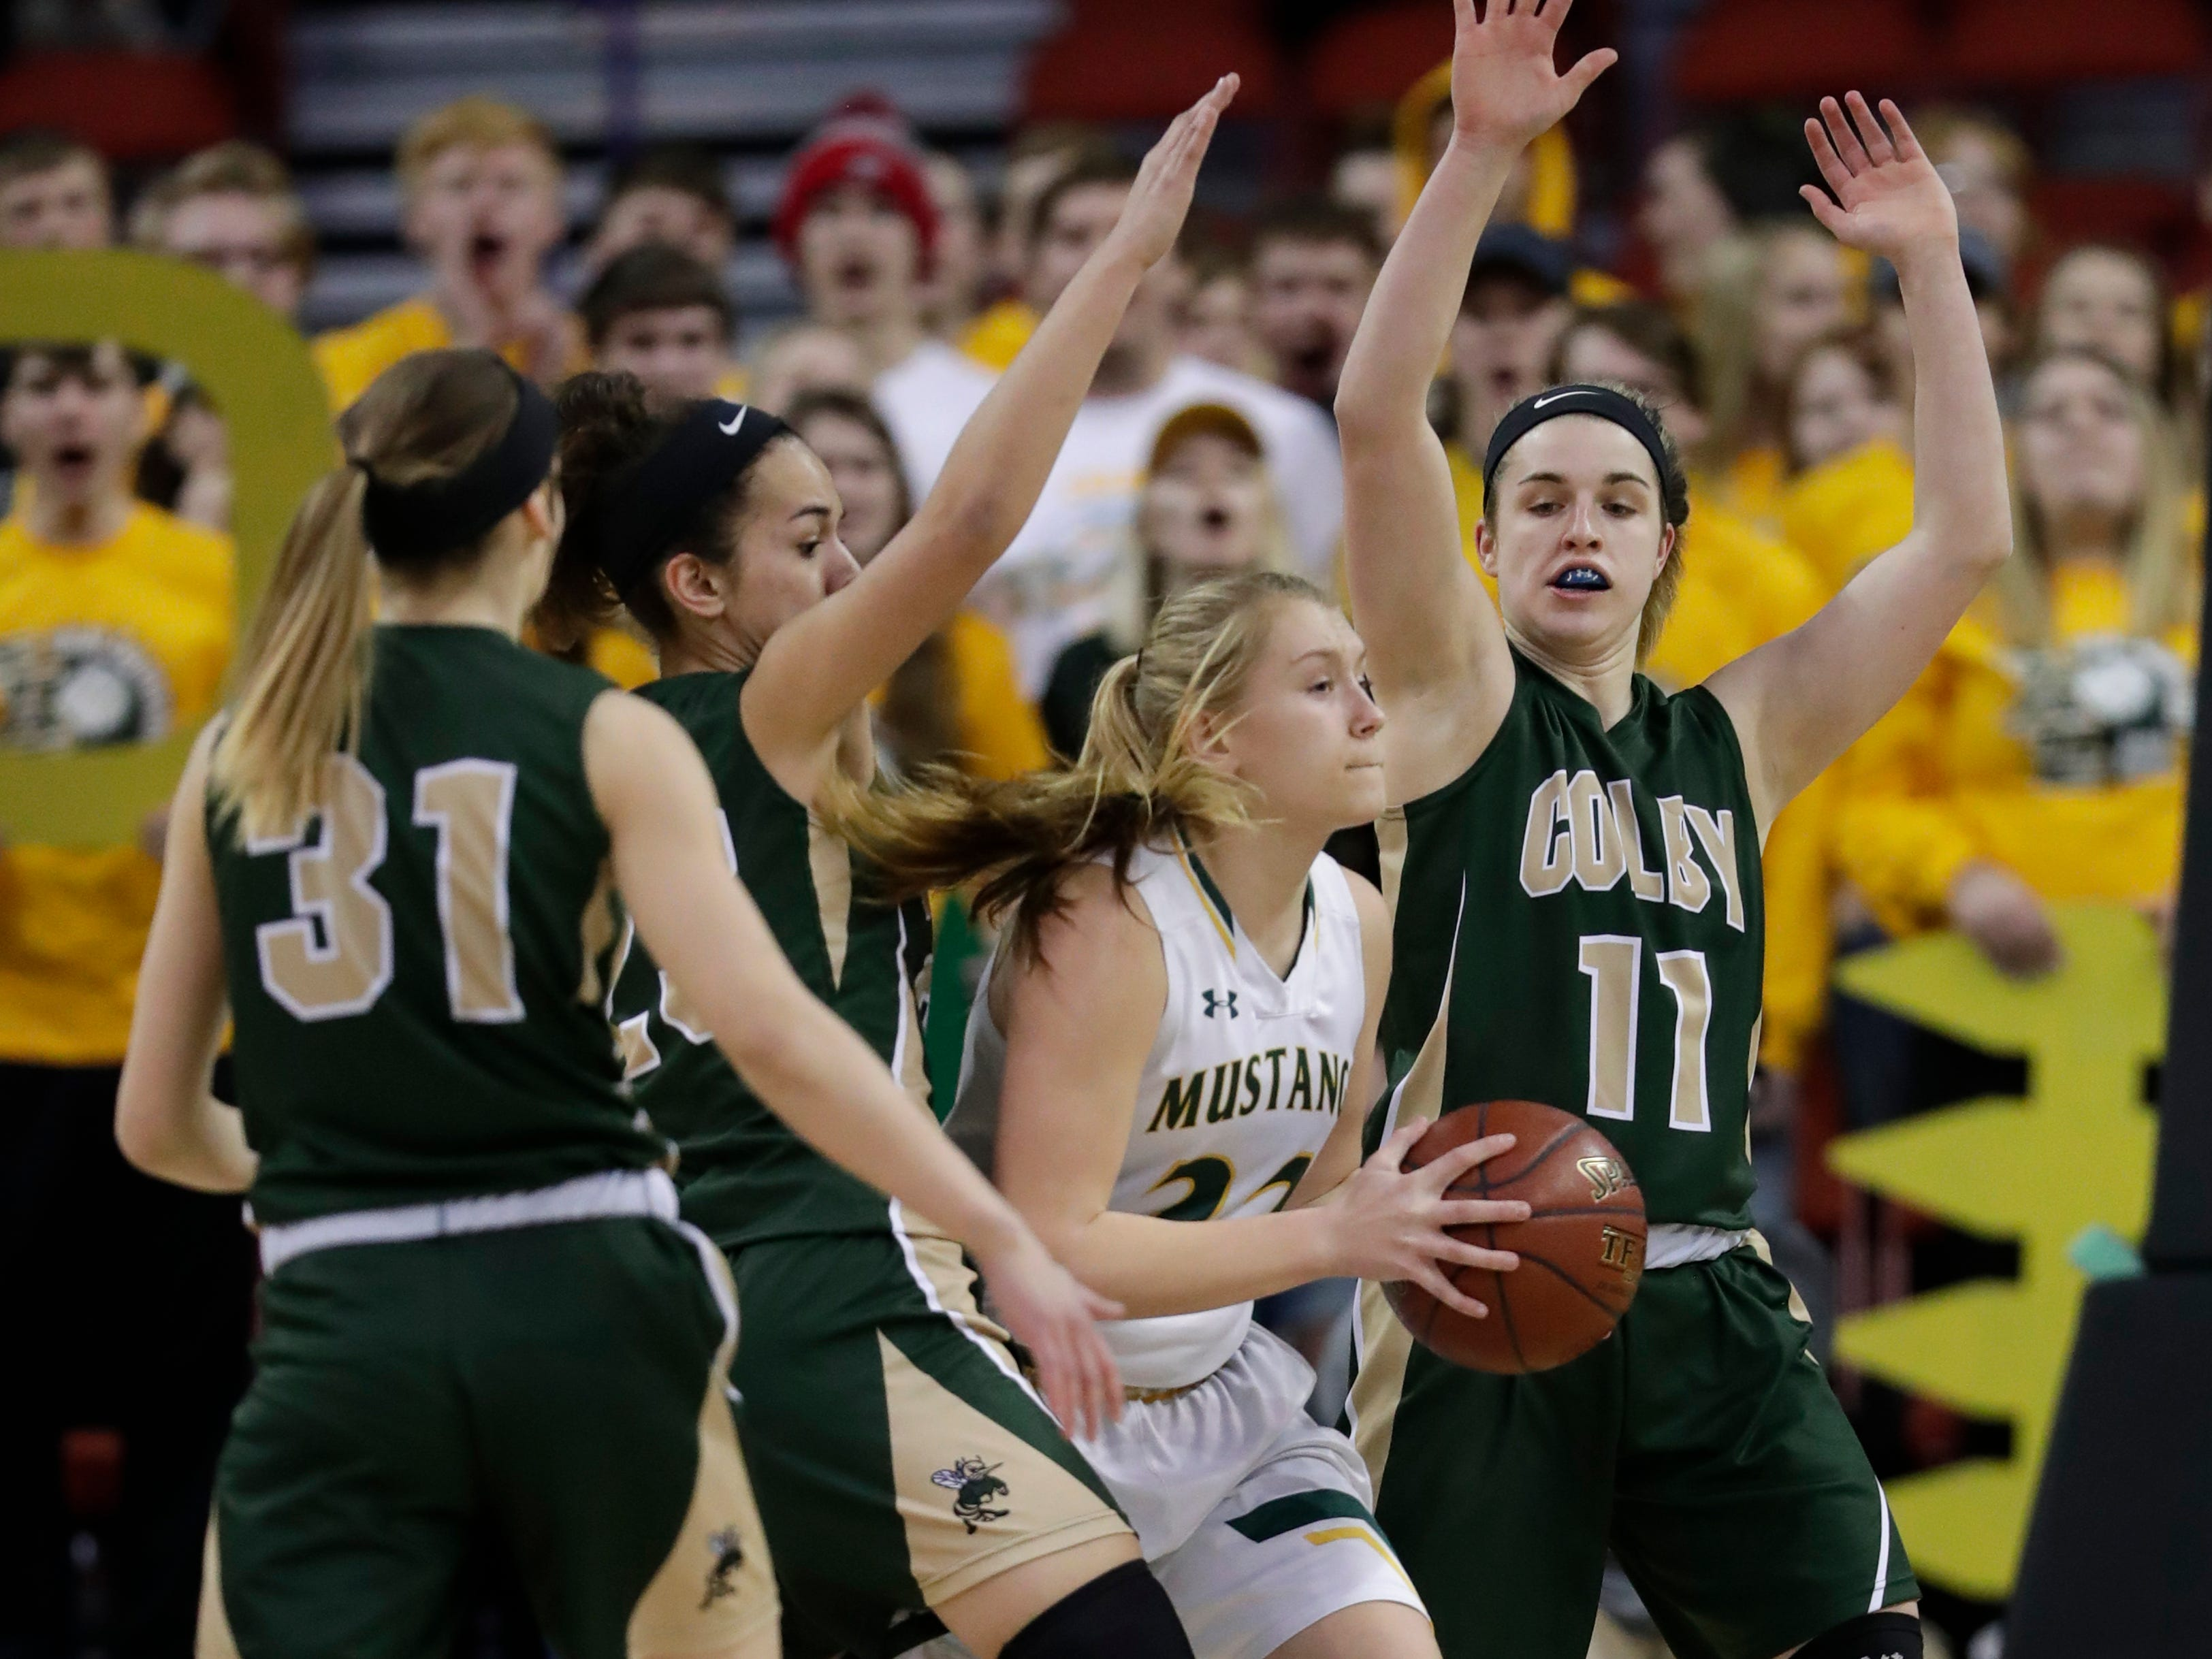 Colby's Brooke Suckow (22) is under heavy pressure by Melrose-Mindoro defenders during their Division 4 semifinal game at the WIAA girls state basketball tournament Thursday, March 7, 2019, at the Resch Center in Ashwaubenon, Wis.